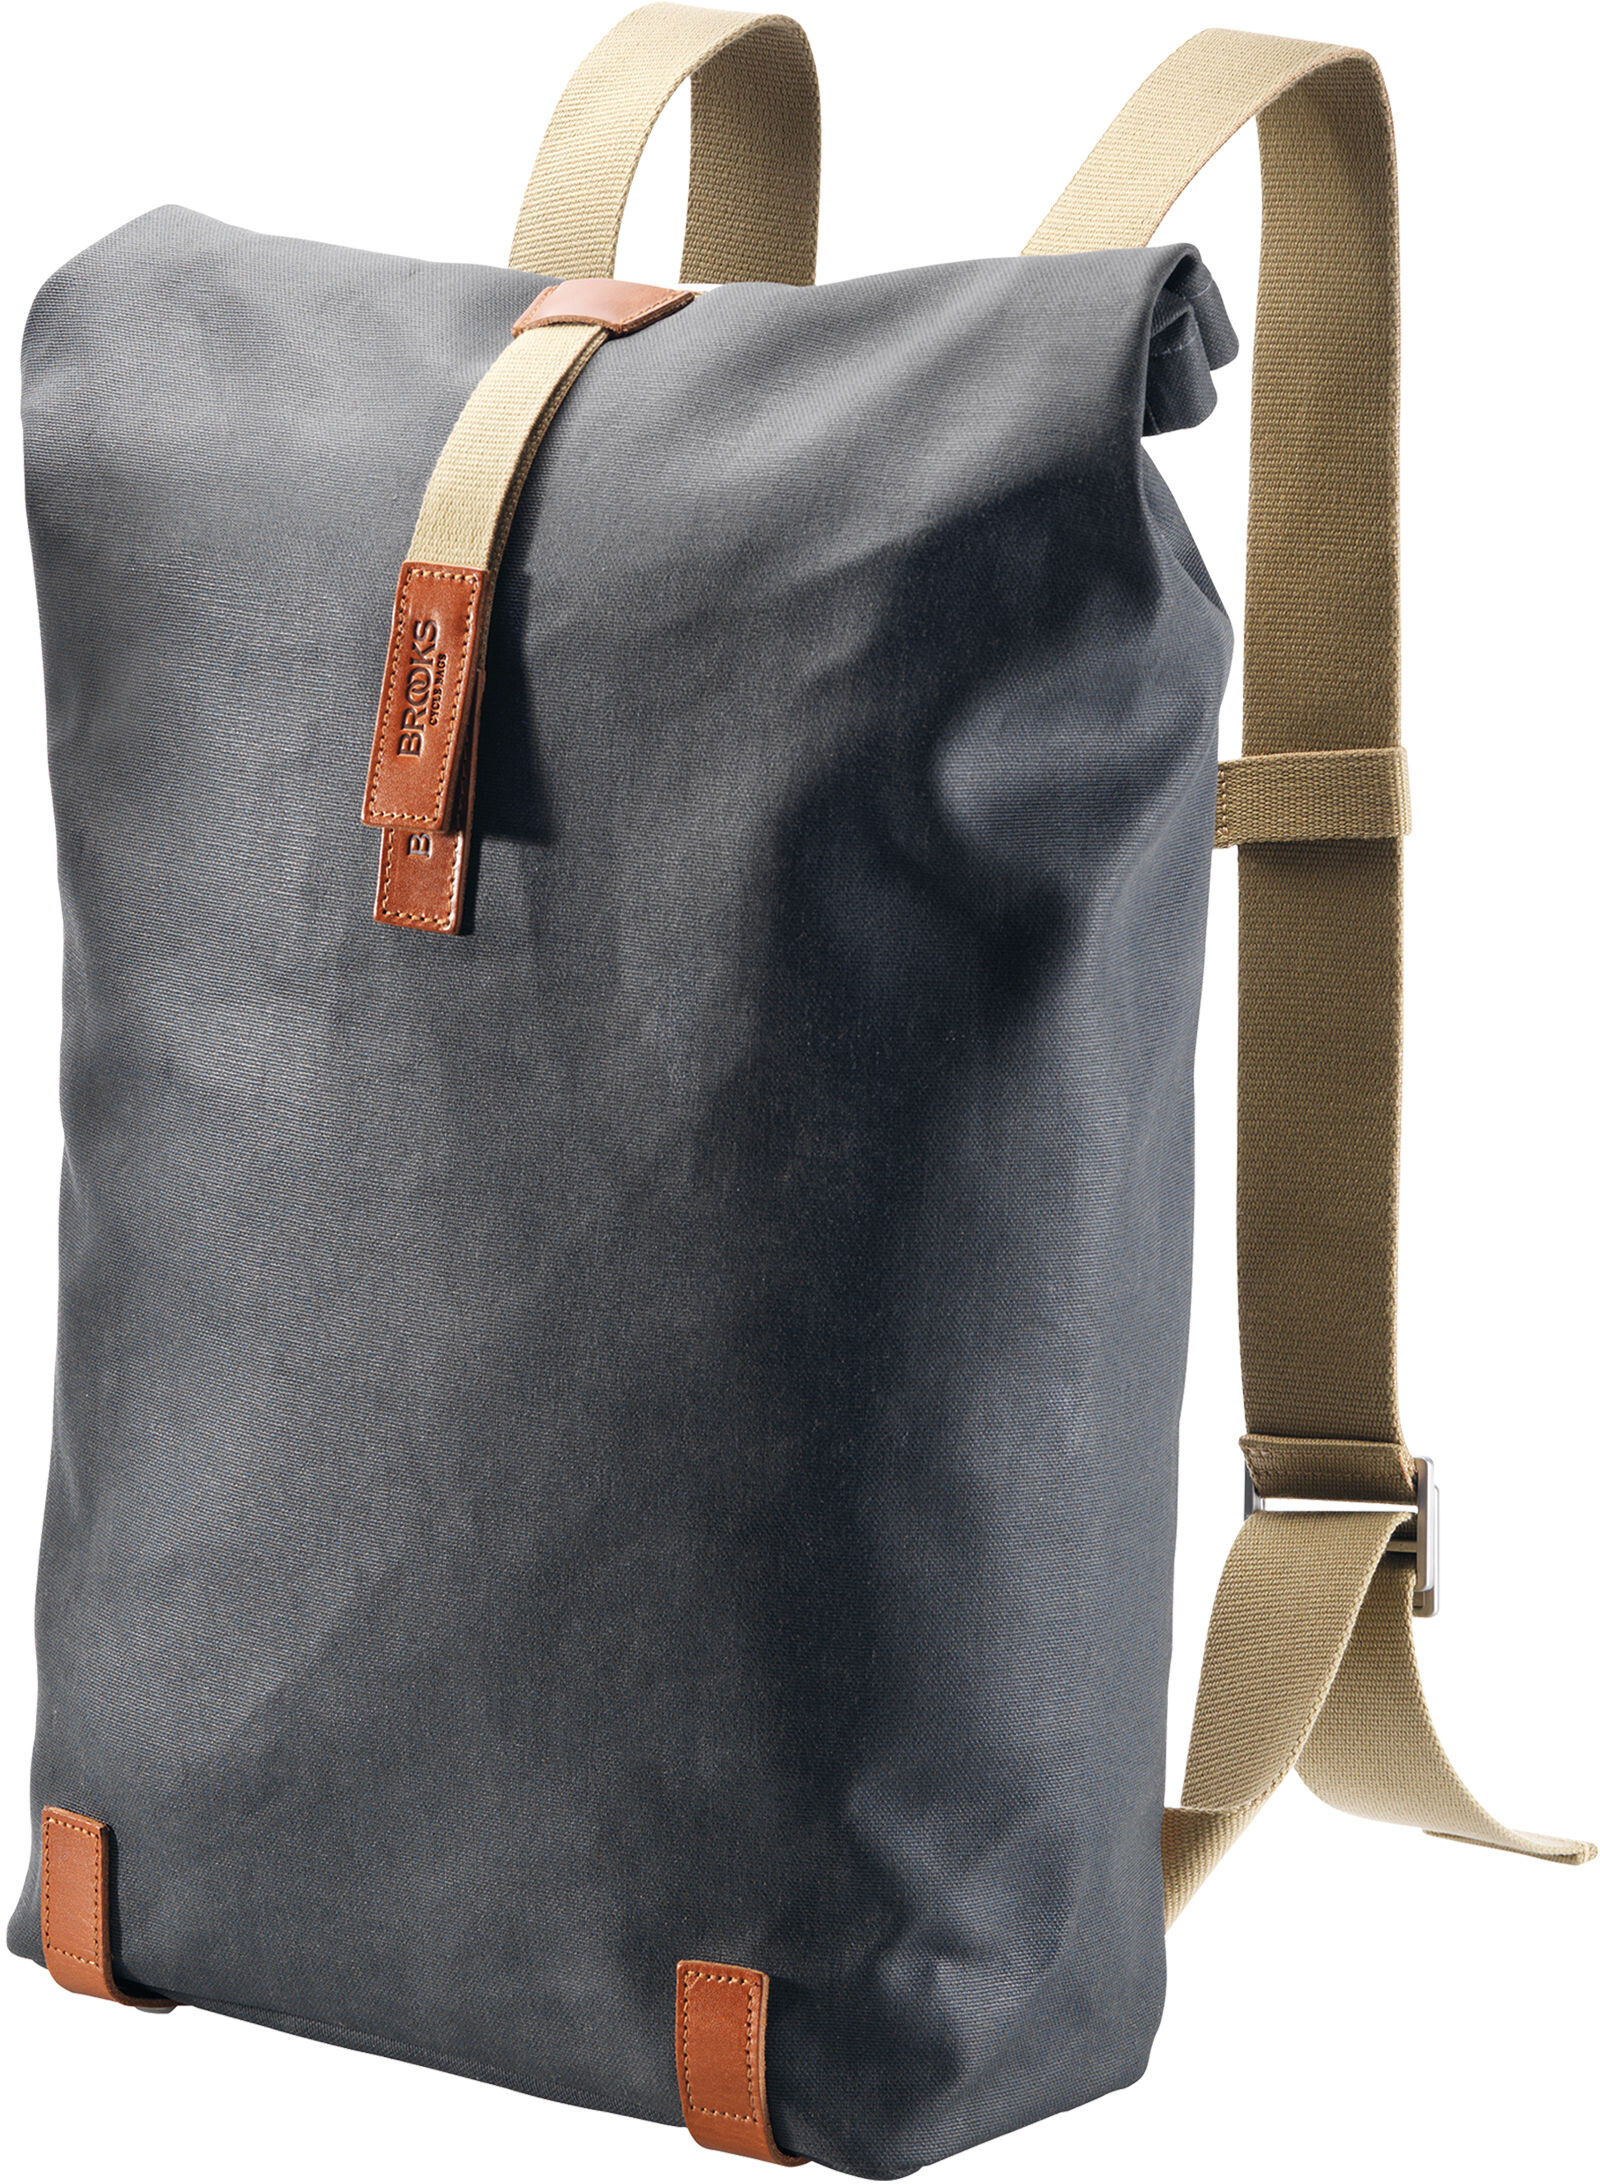 57d8e784e1 Brooks Pickwick Canvas Backpack 26l grey at Bikester.co.uk